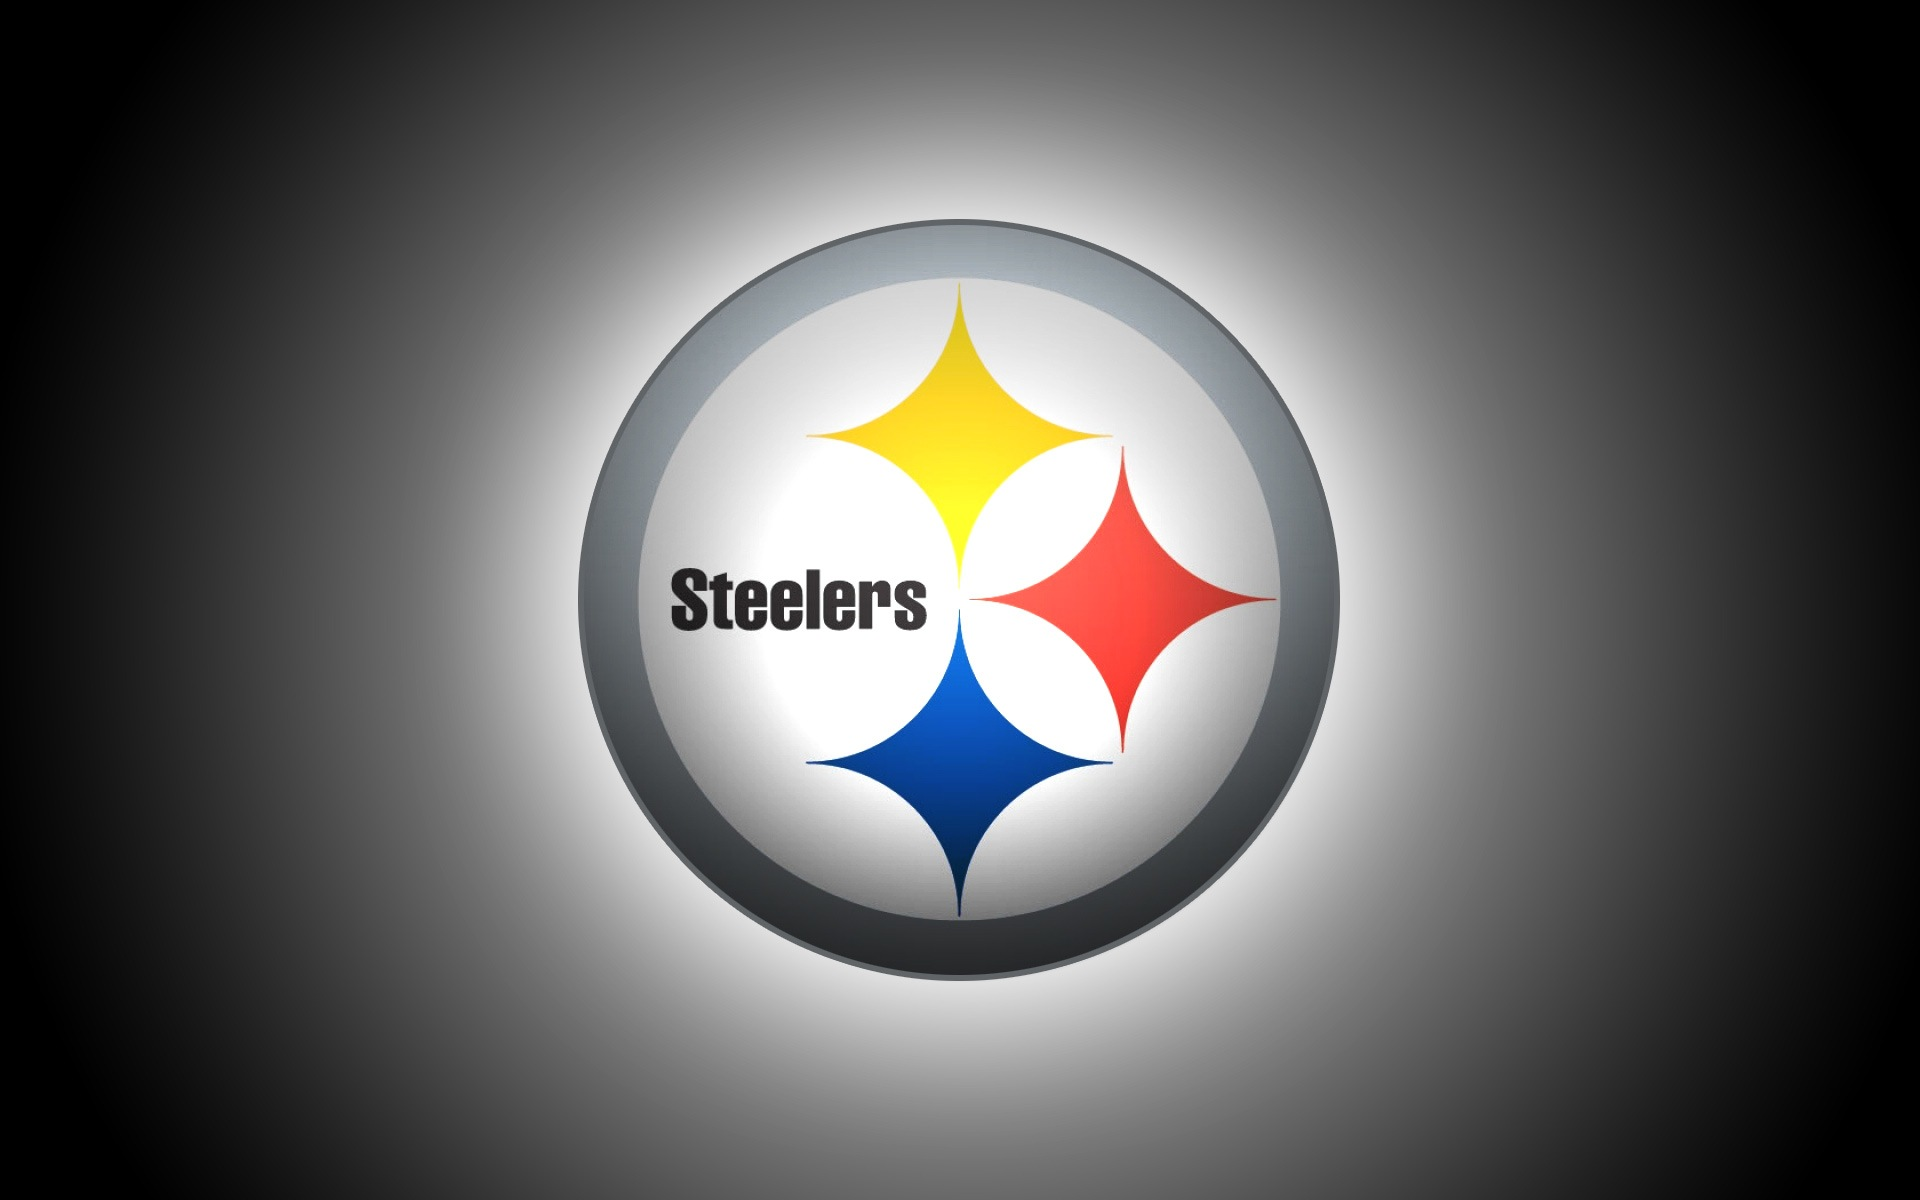 Pittsburgh steelers logo clipart free clip royalty free Free Pittsburgh Steelers Logo, Download Free Clip Art, Free ... clip royalty free